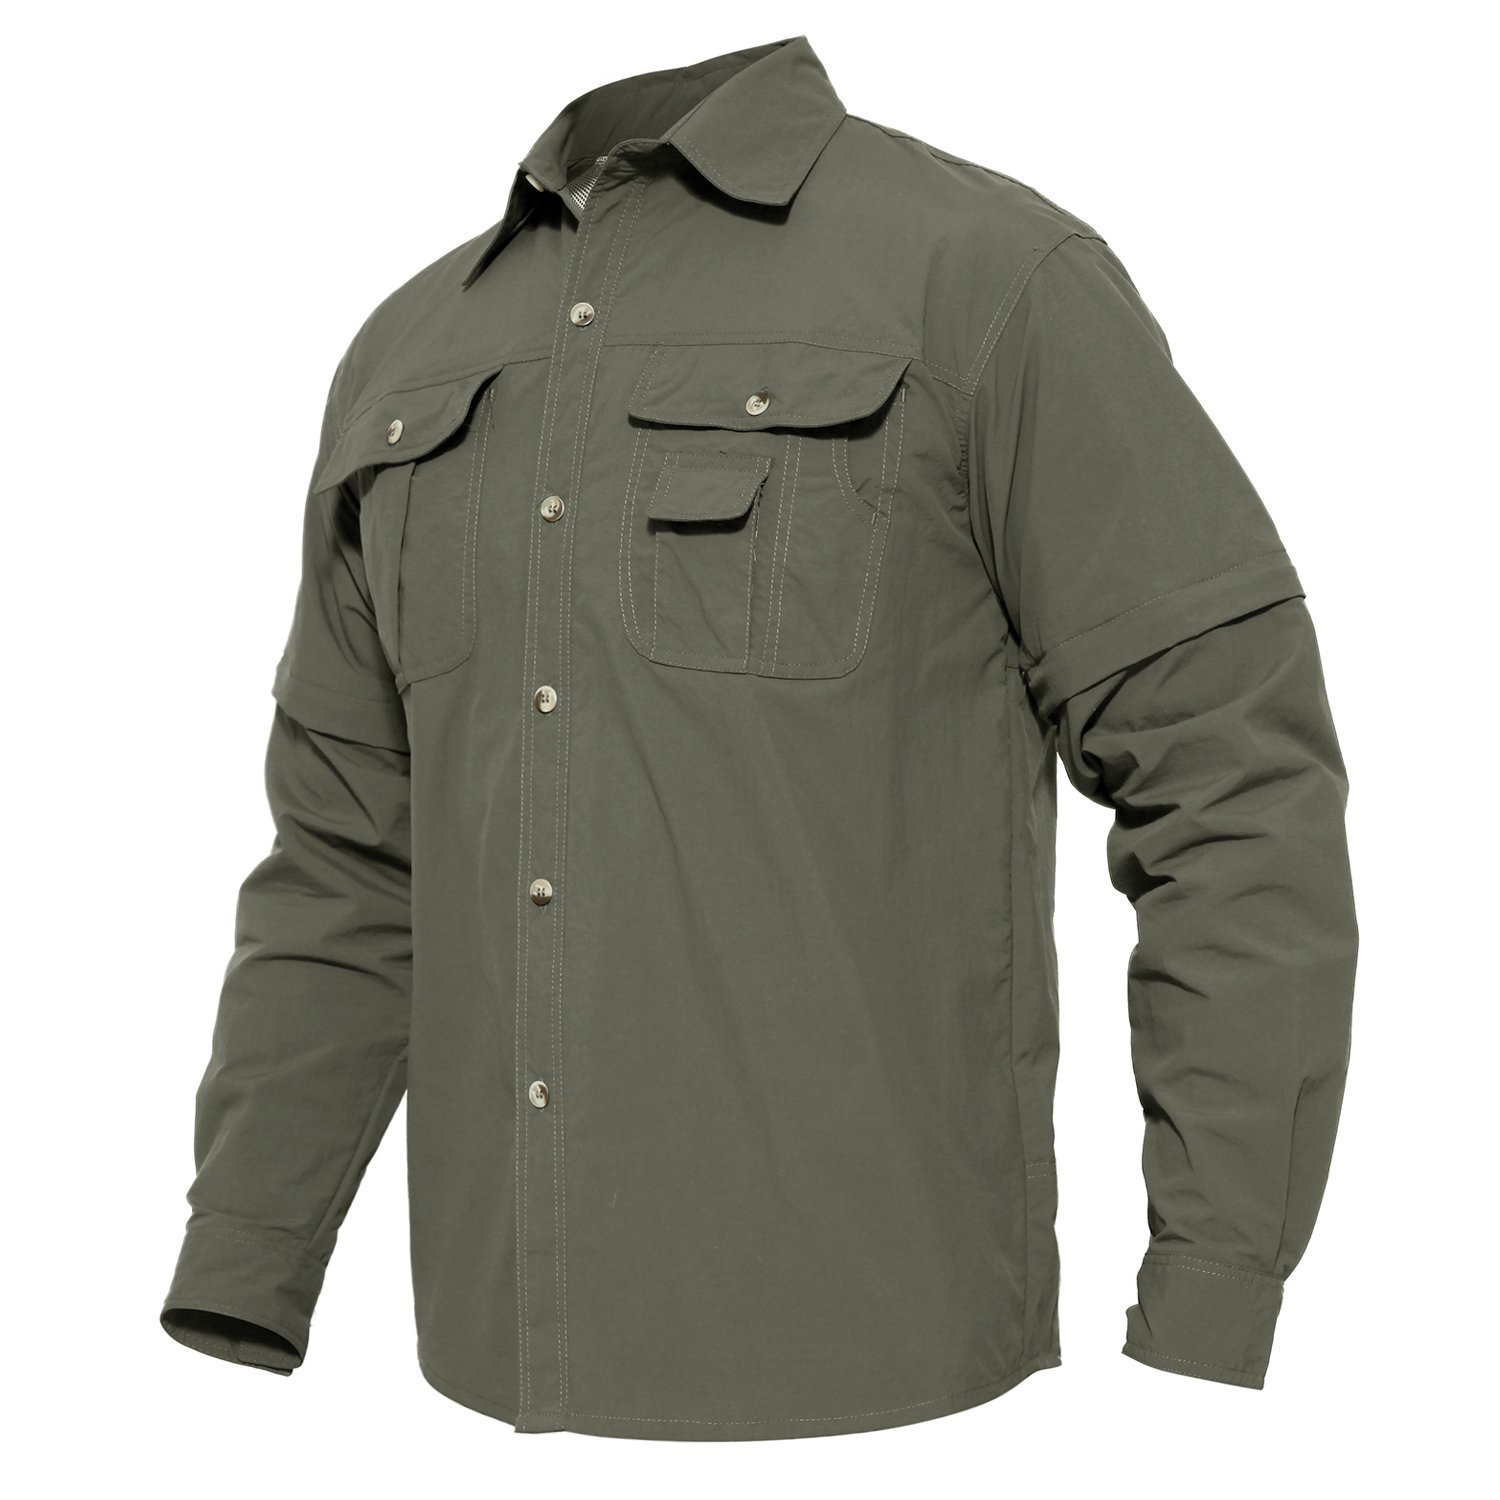 MAGCOMSEN Vented Shirt Outdoor Climbing Convertible Breathable Comfortable Short Sleeve Shirt